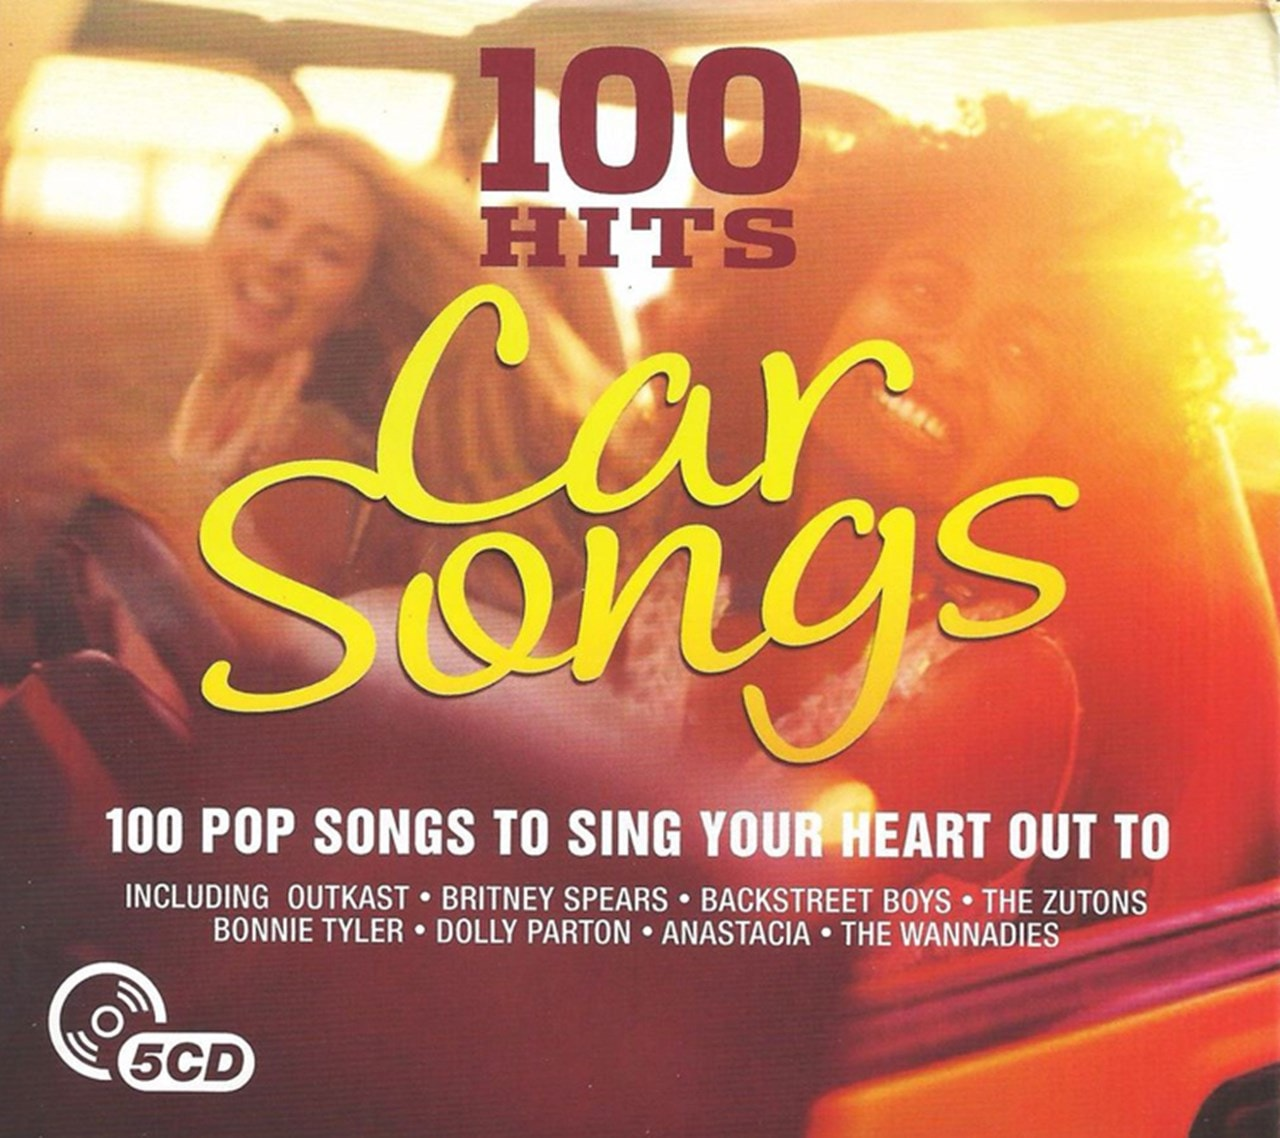 100 Hits: Car Songs - 1